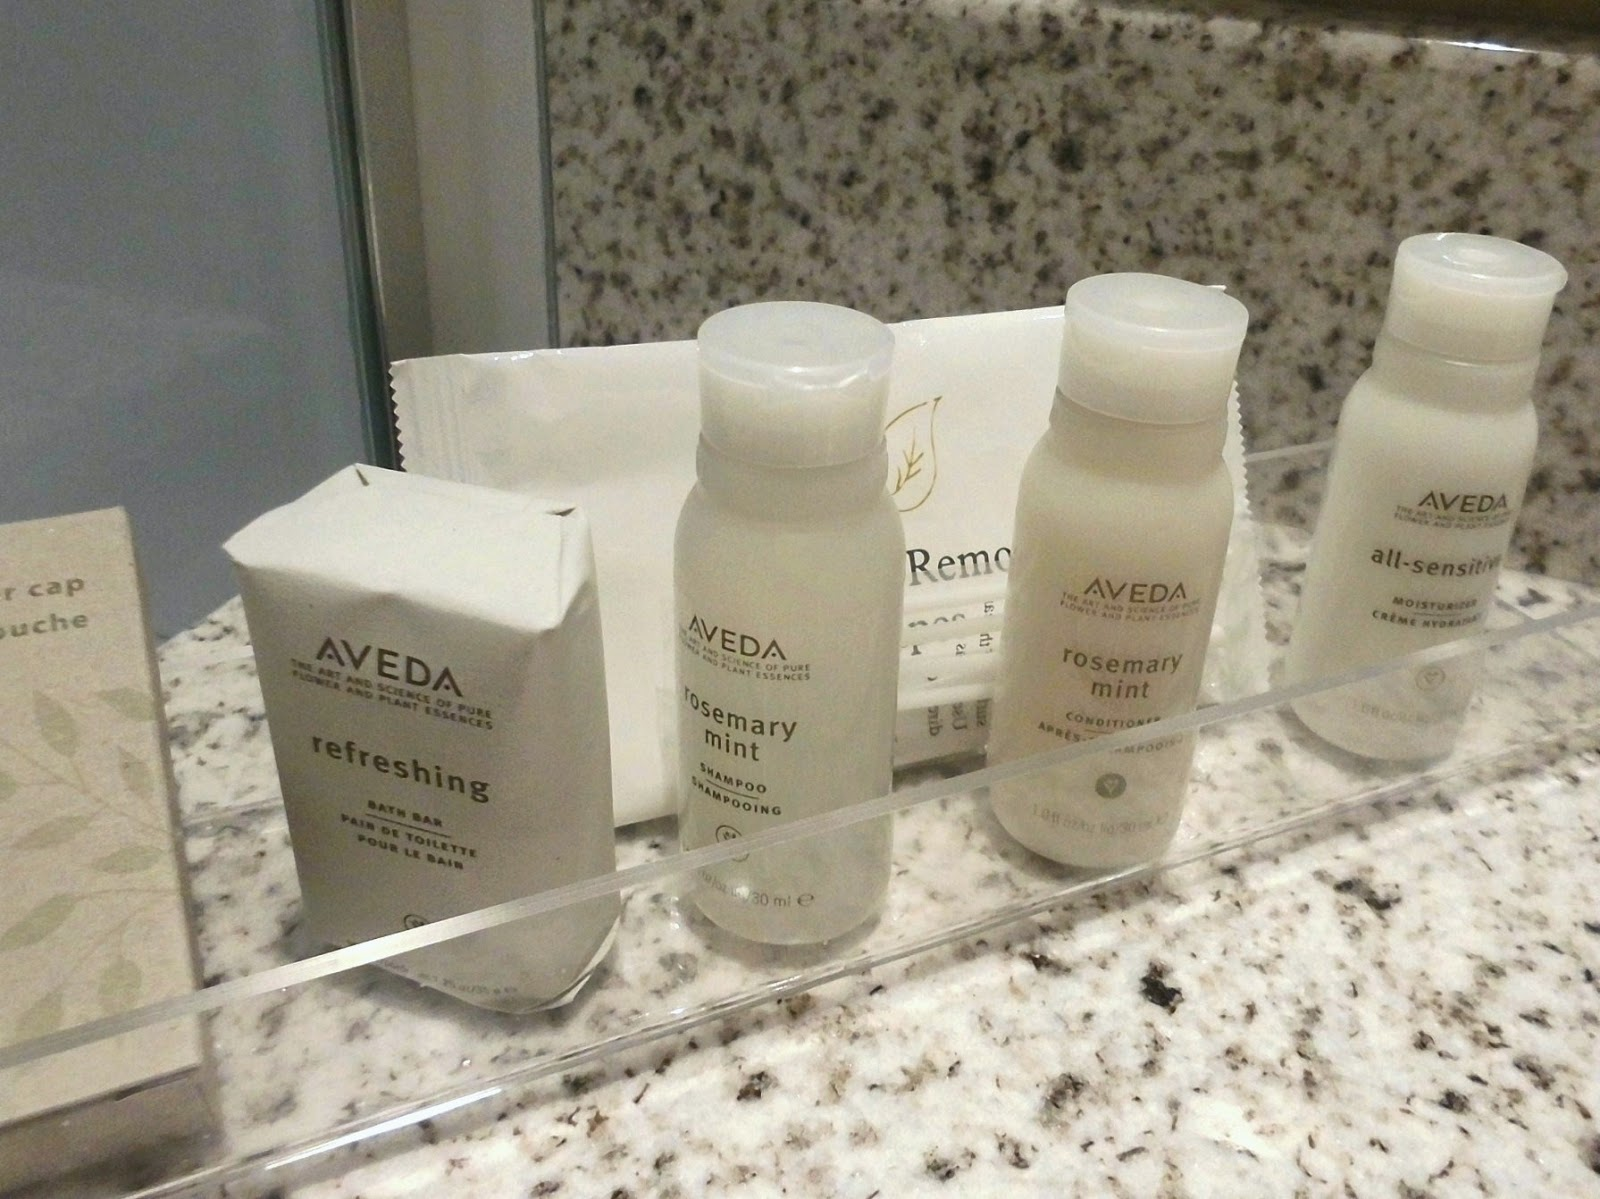 10 Of The Most Luxurious Hotel Toiletries - Aveda